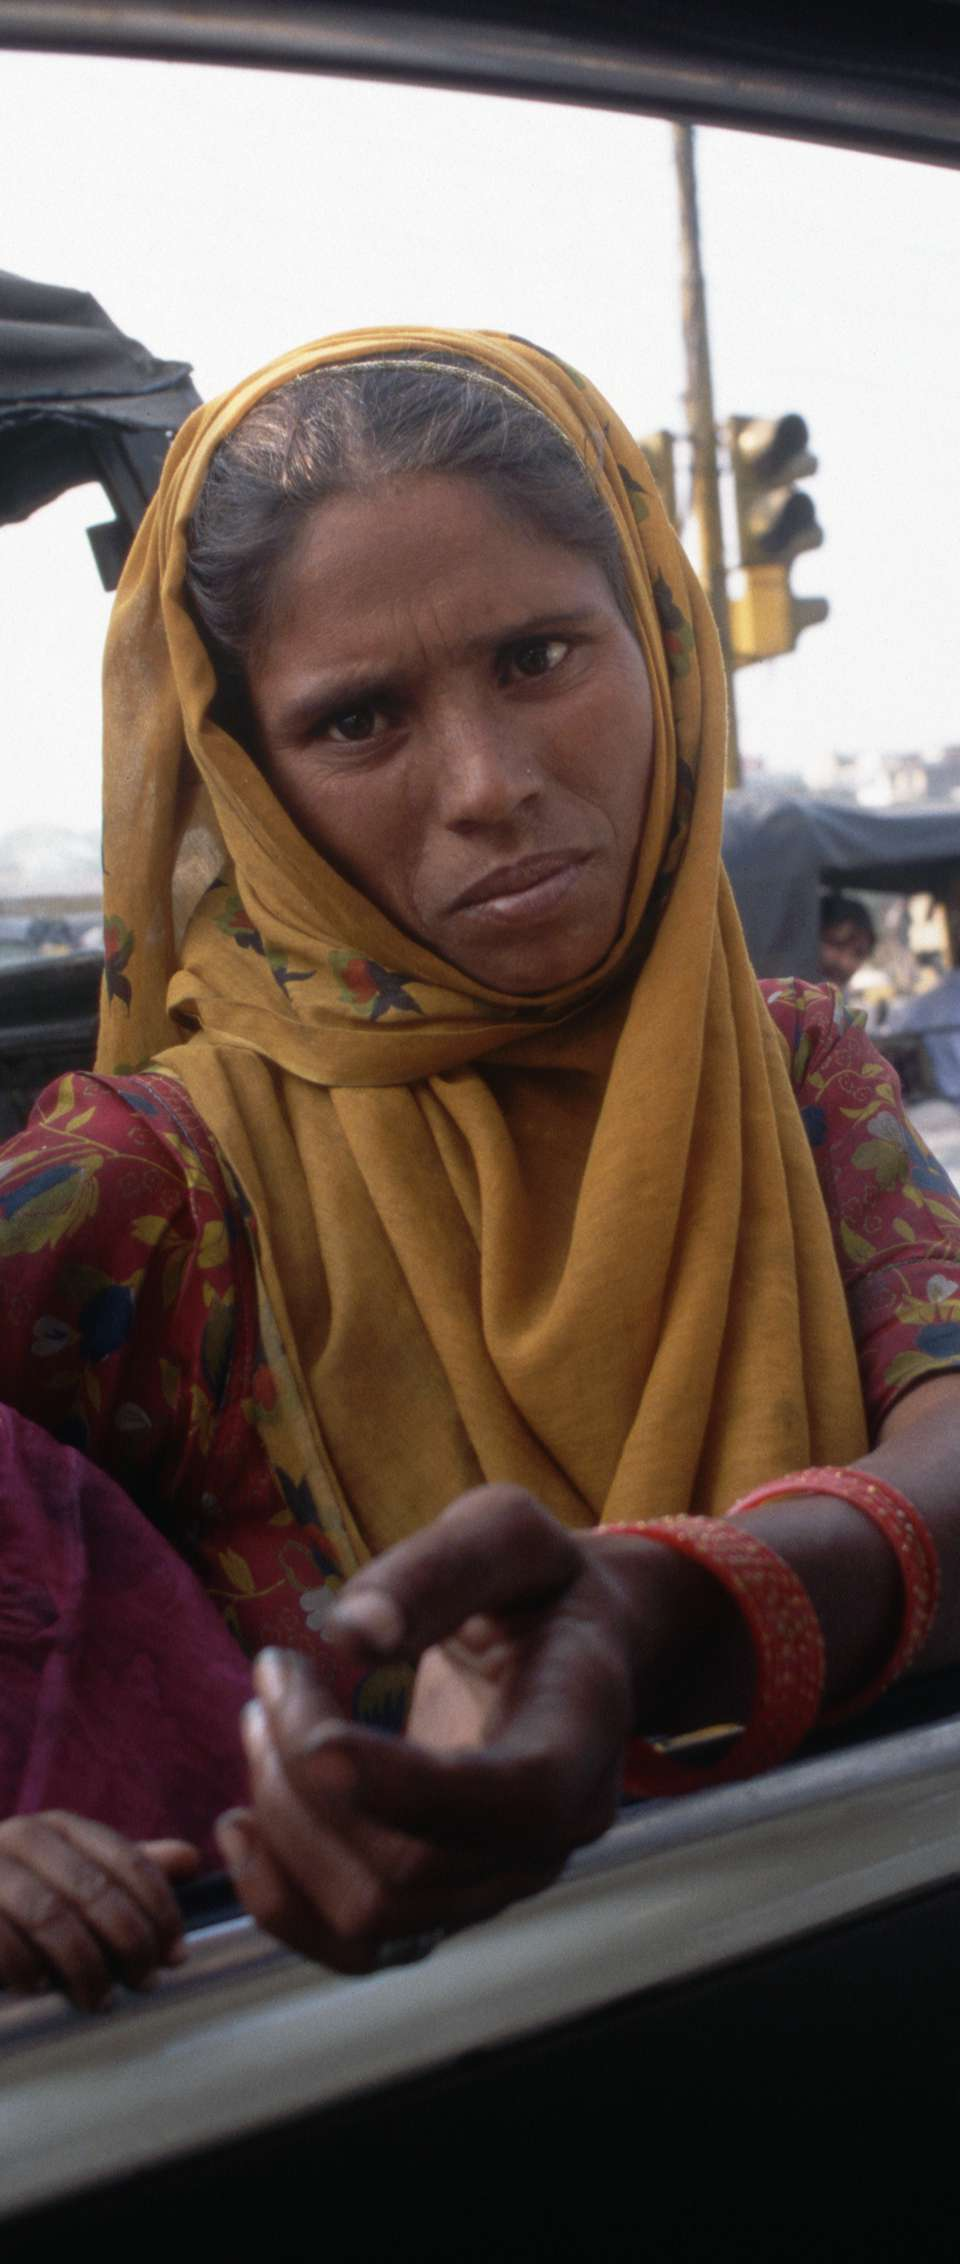 A woman carrying a young child begs for money outside a taxicab in New Delhi